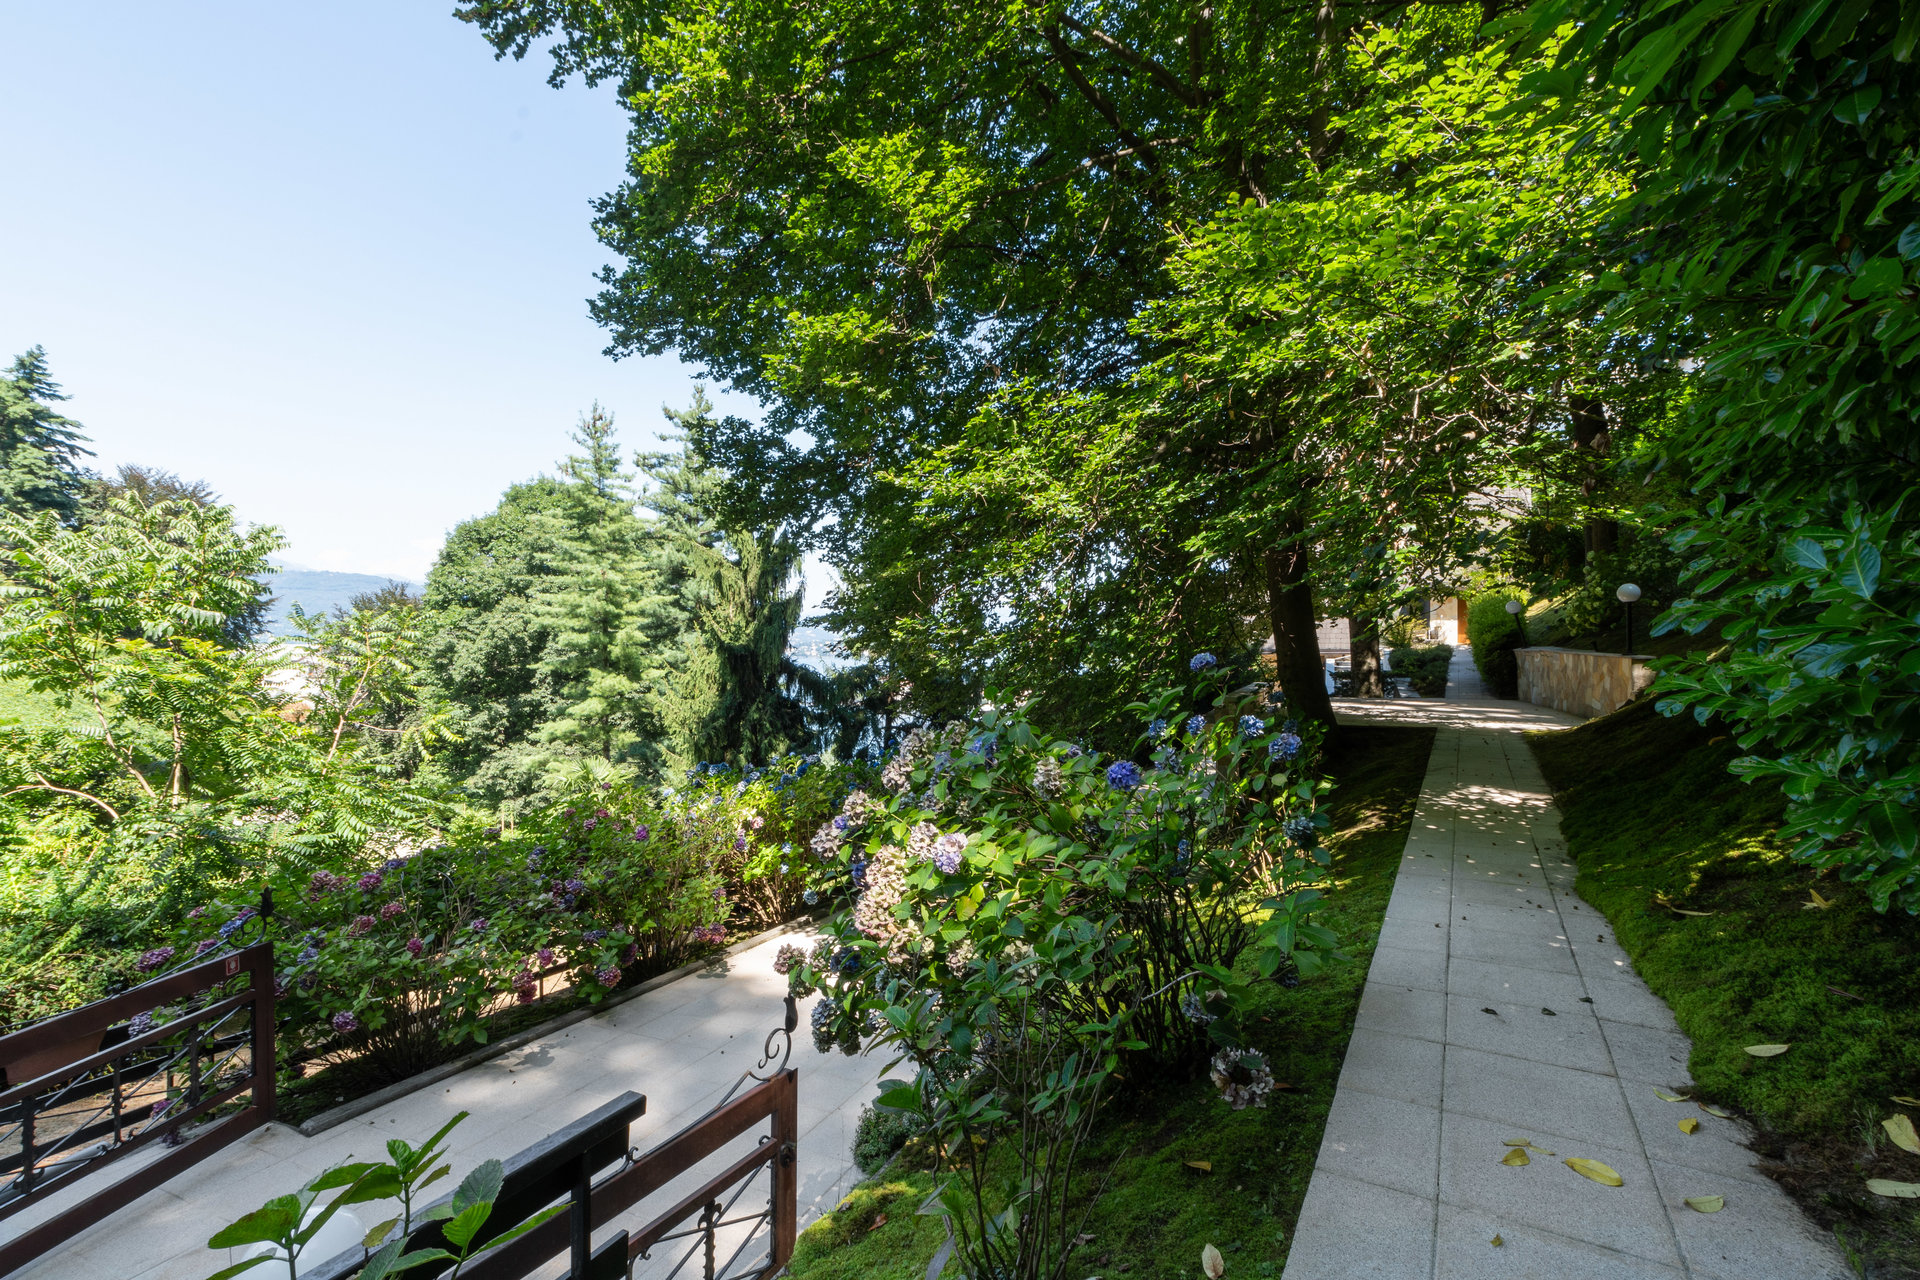 Villa for sale in Stresa with park and view on Borromean islands - flowers